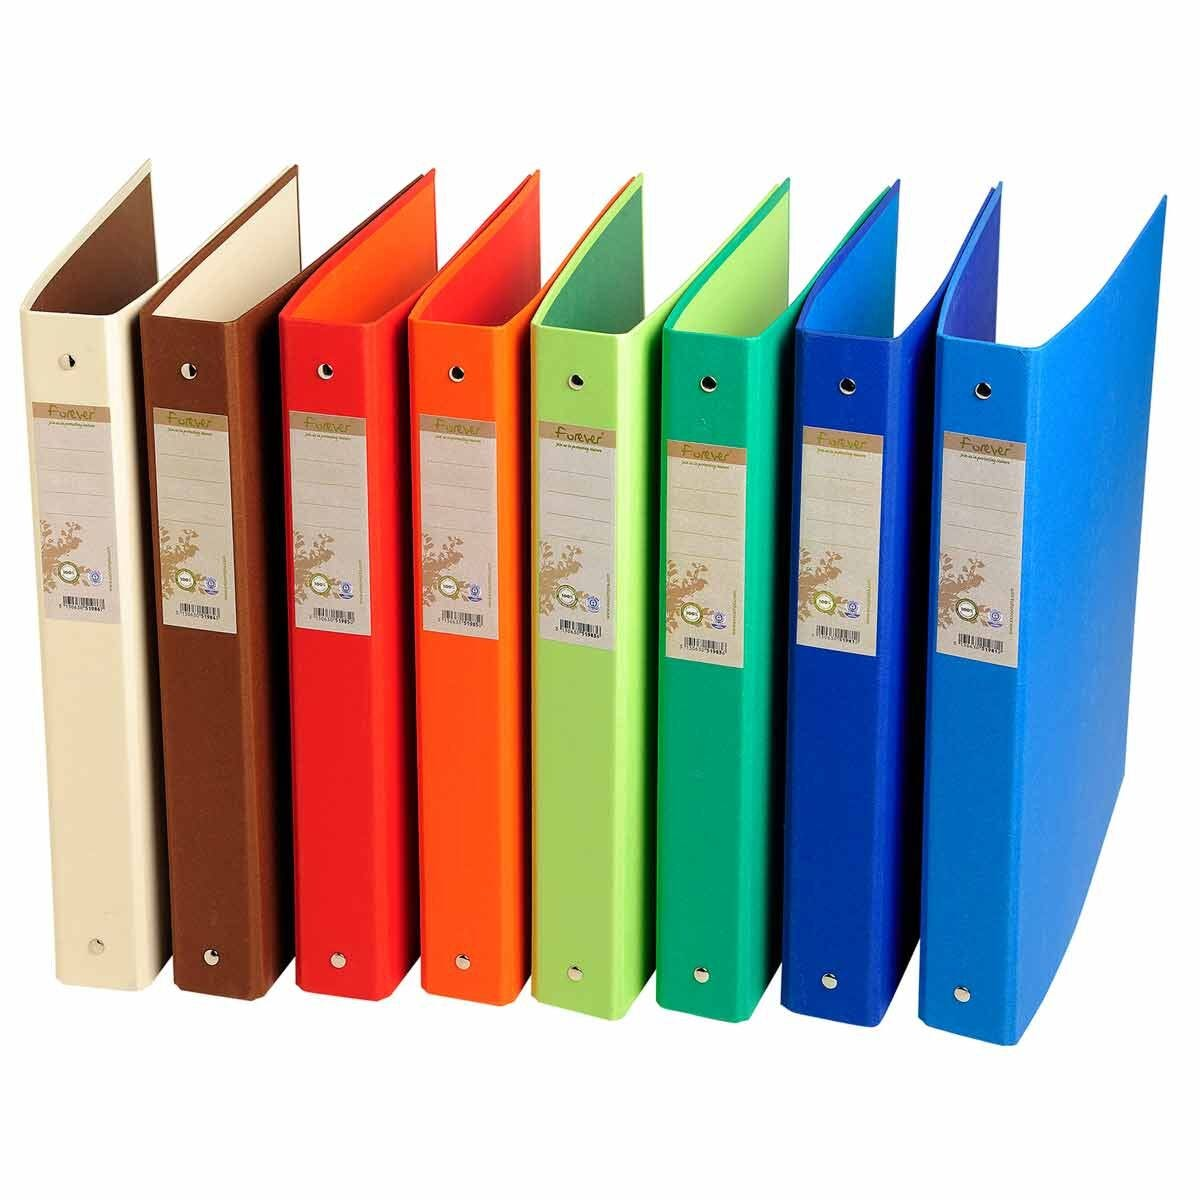 Exacompta Forever Ring Binder 4 Ring 30mm A4 Pack of 10 assorted